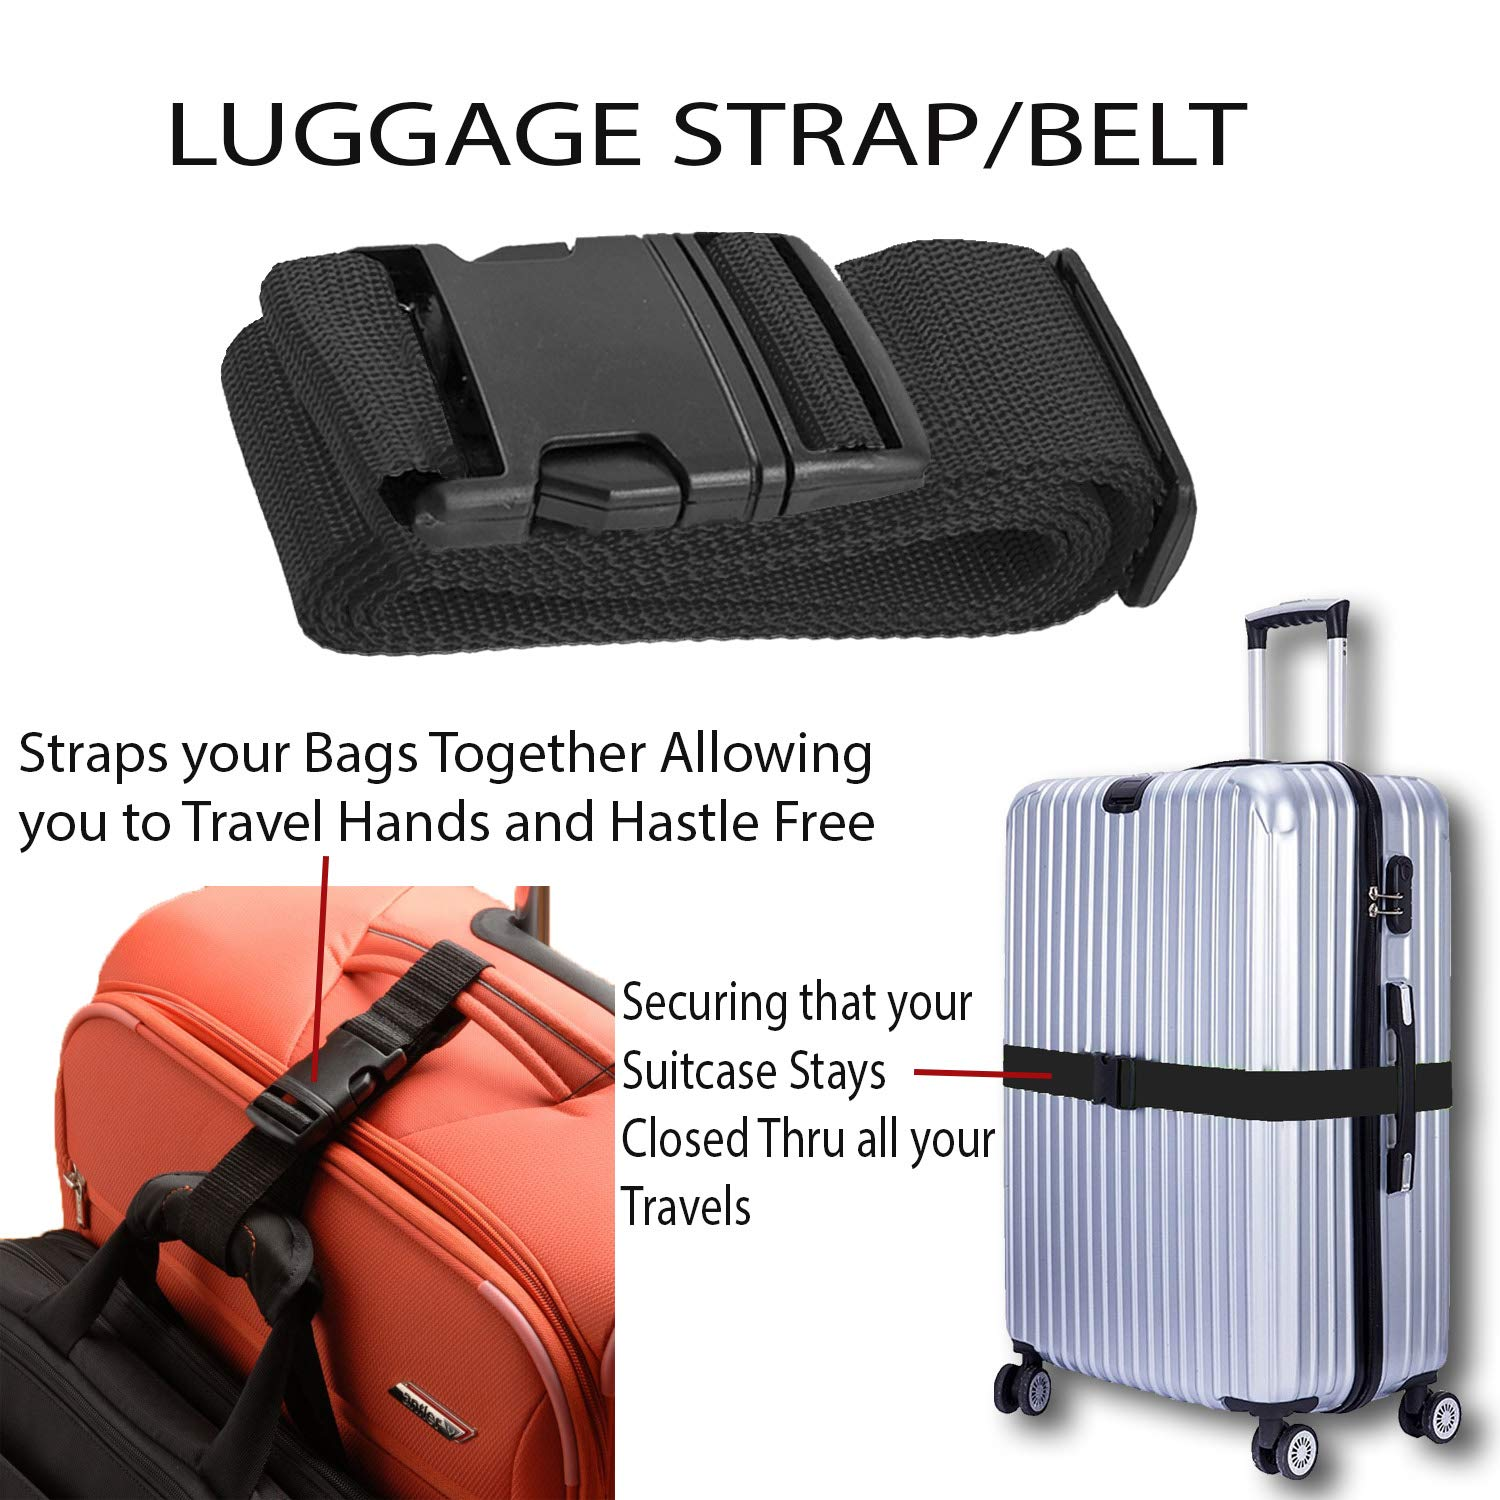 2 Pack Travel Case Accessories Black Luggage Belts Suitcase Straps Adjustable and Durable